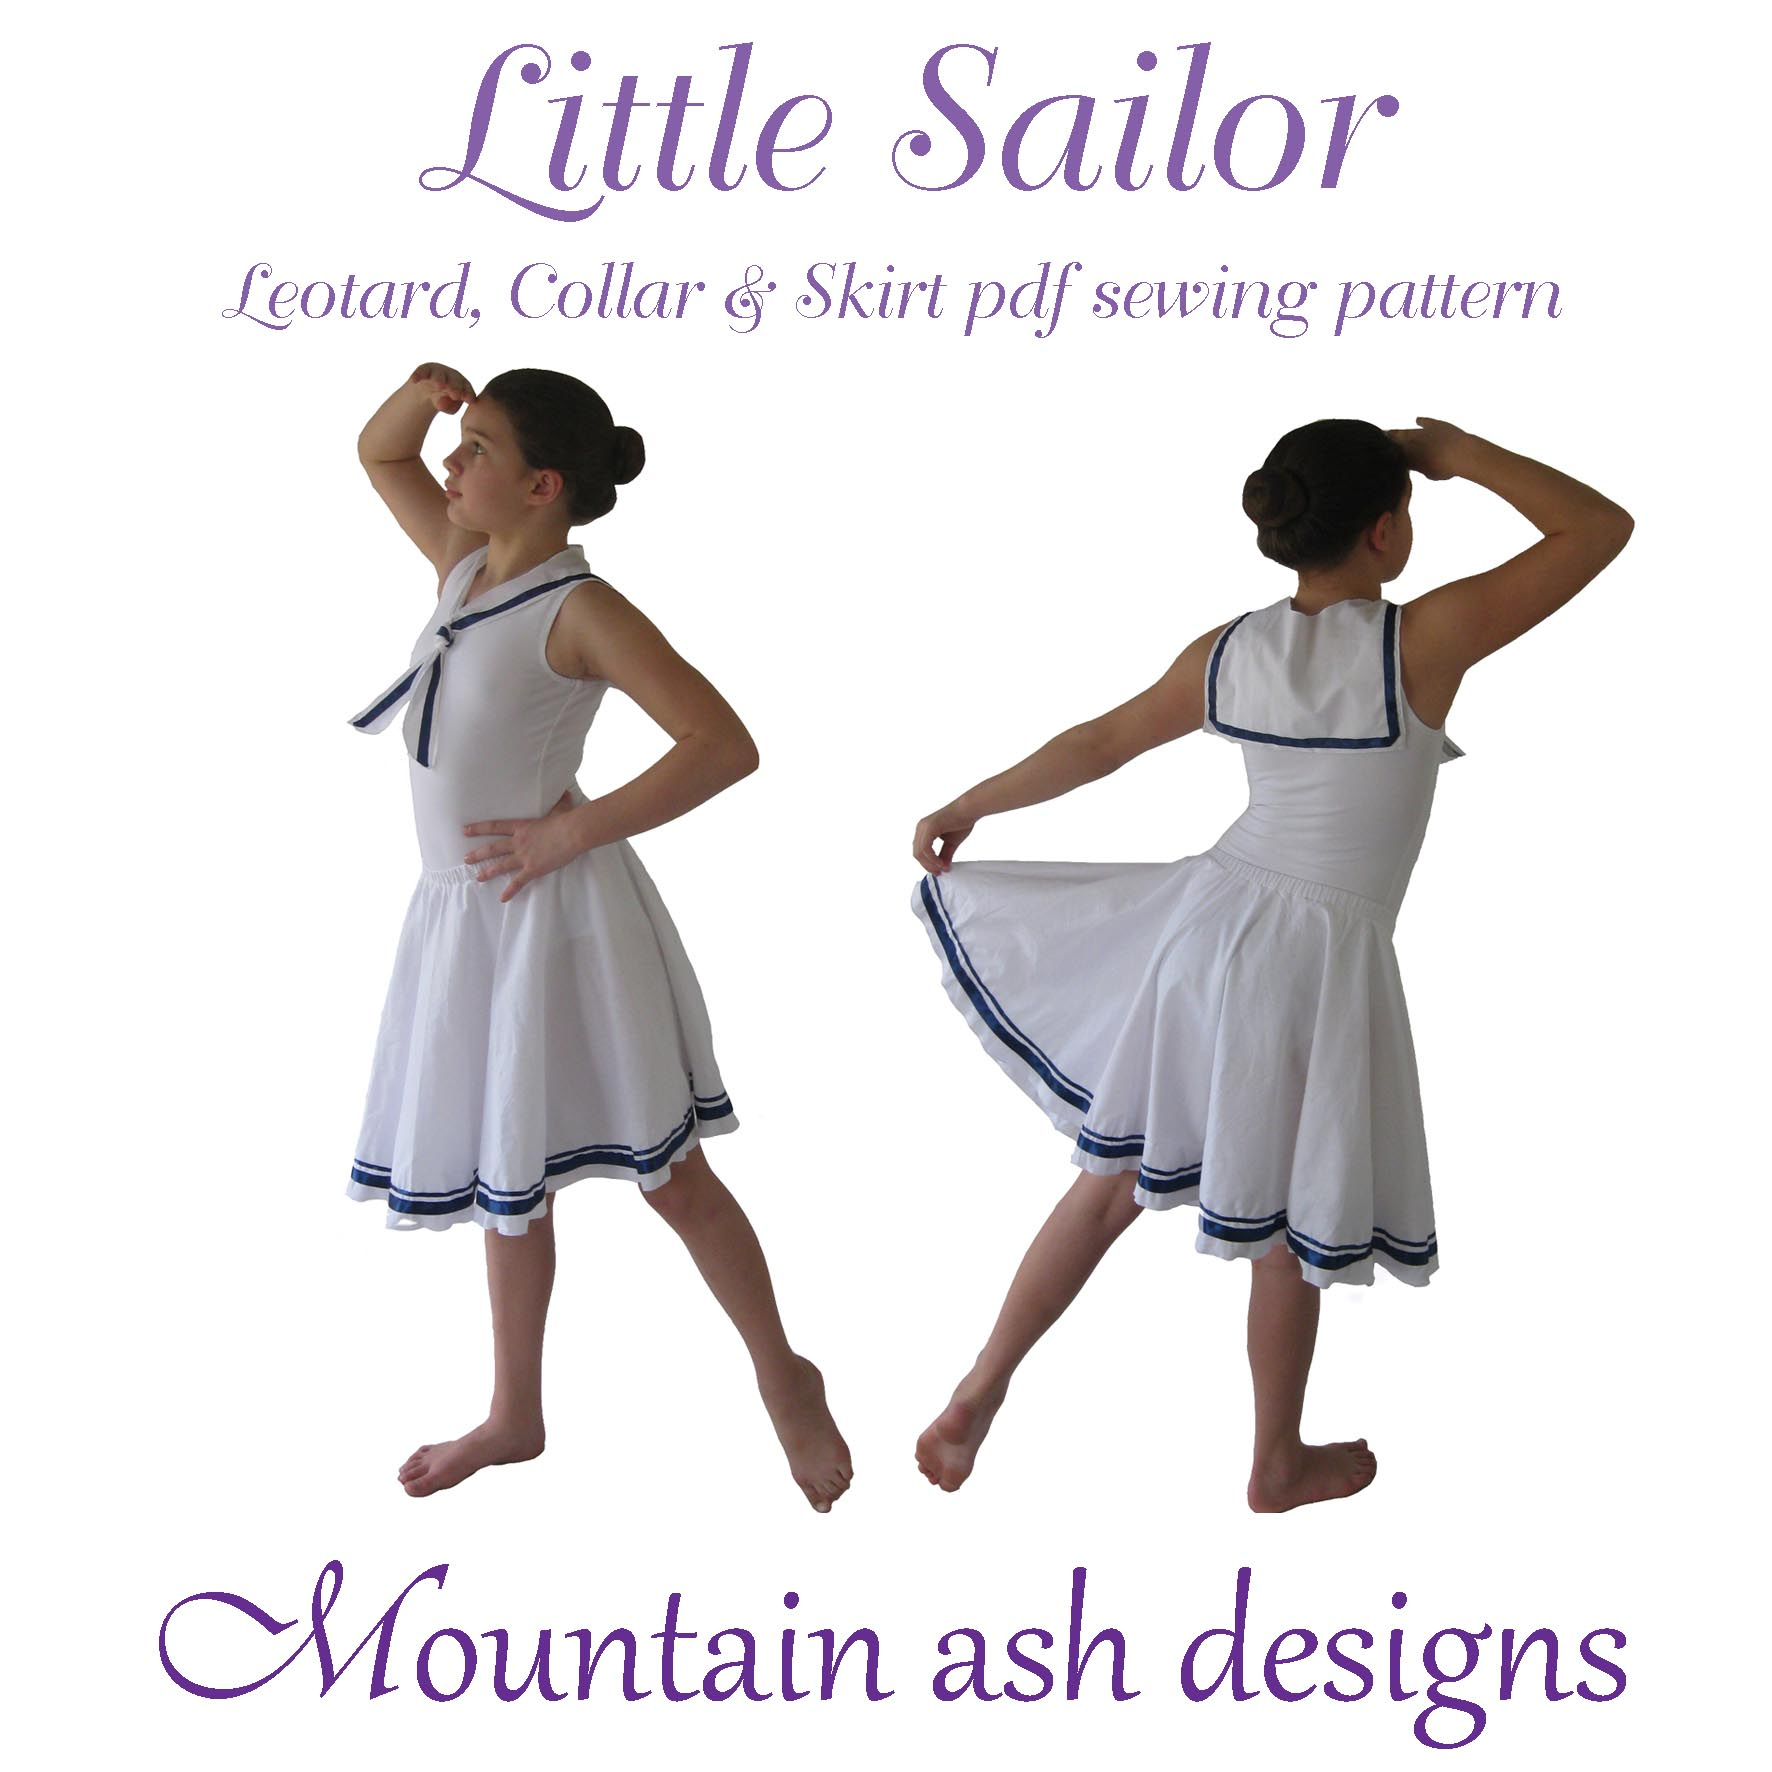 Little Sailor Dance Costume Sewing Pattern in Girls Sizes 2-14